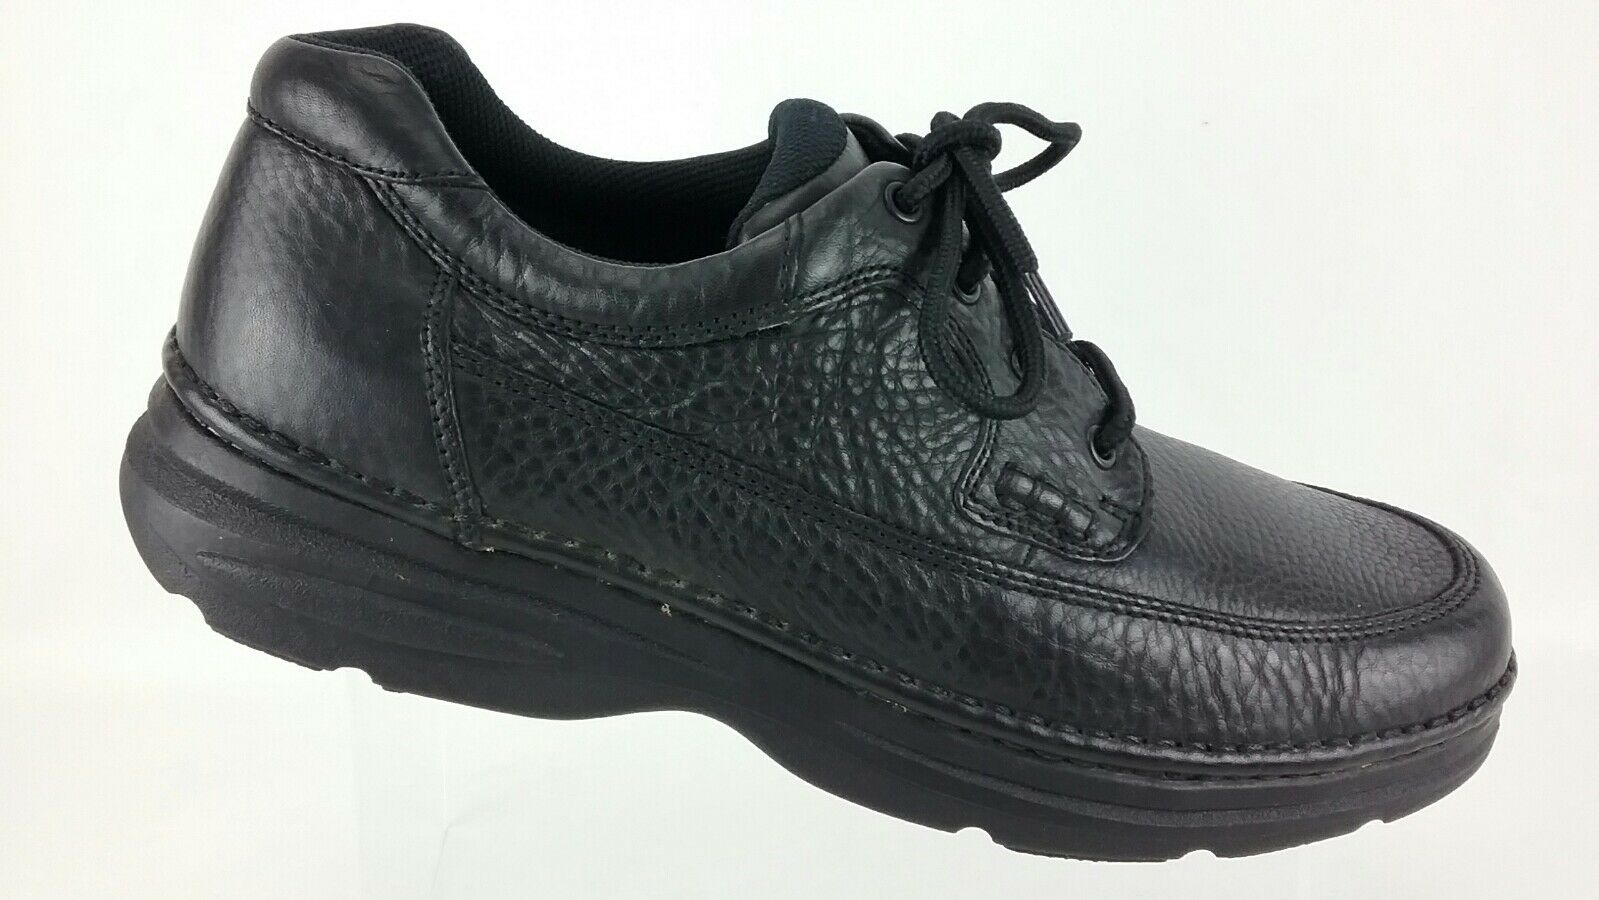 Bass Casual Comfort Oxford Pebble Leather Black Lace Up Mens 13 M shoes R7S5